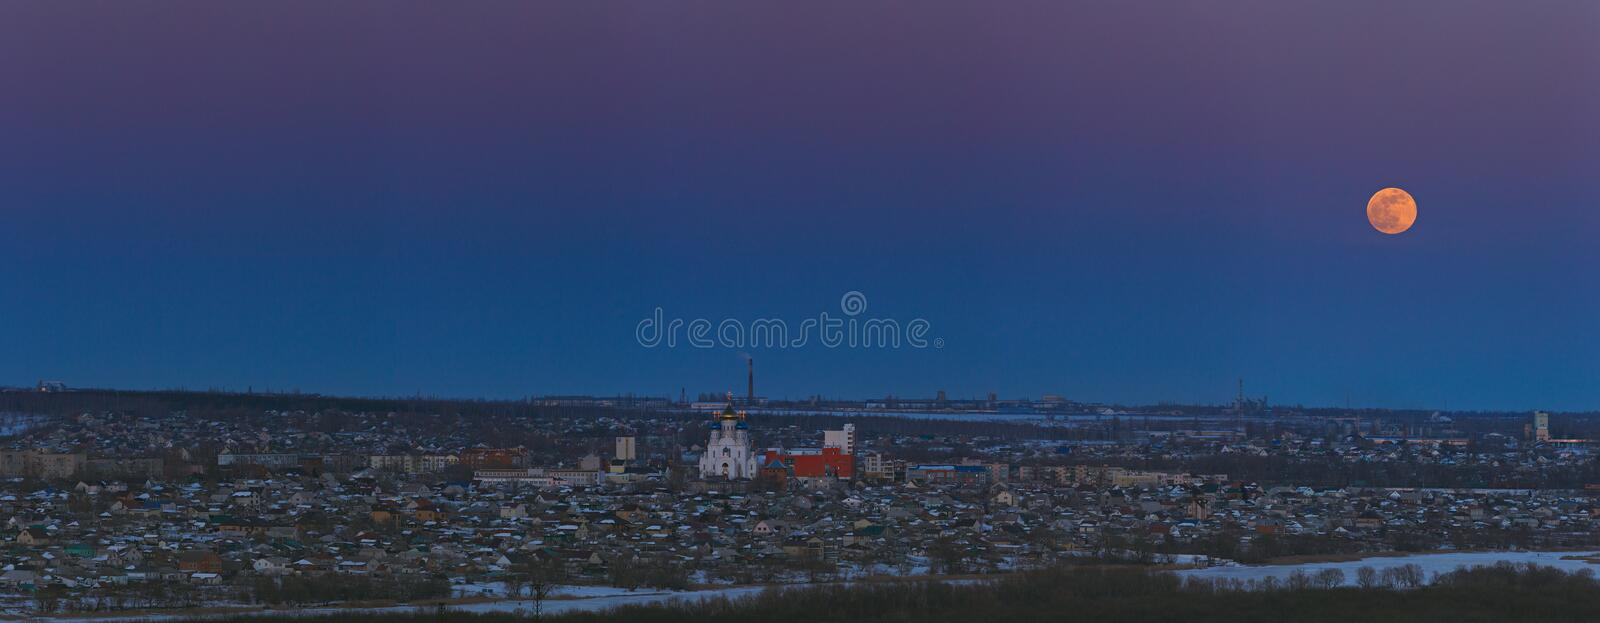 Full moon rising over the city. Sunset time in the twilight sky. Panoramic view of the Orthodox Church.  stock image